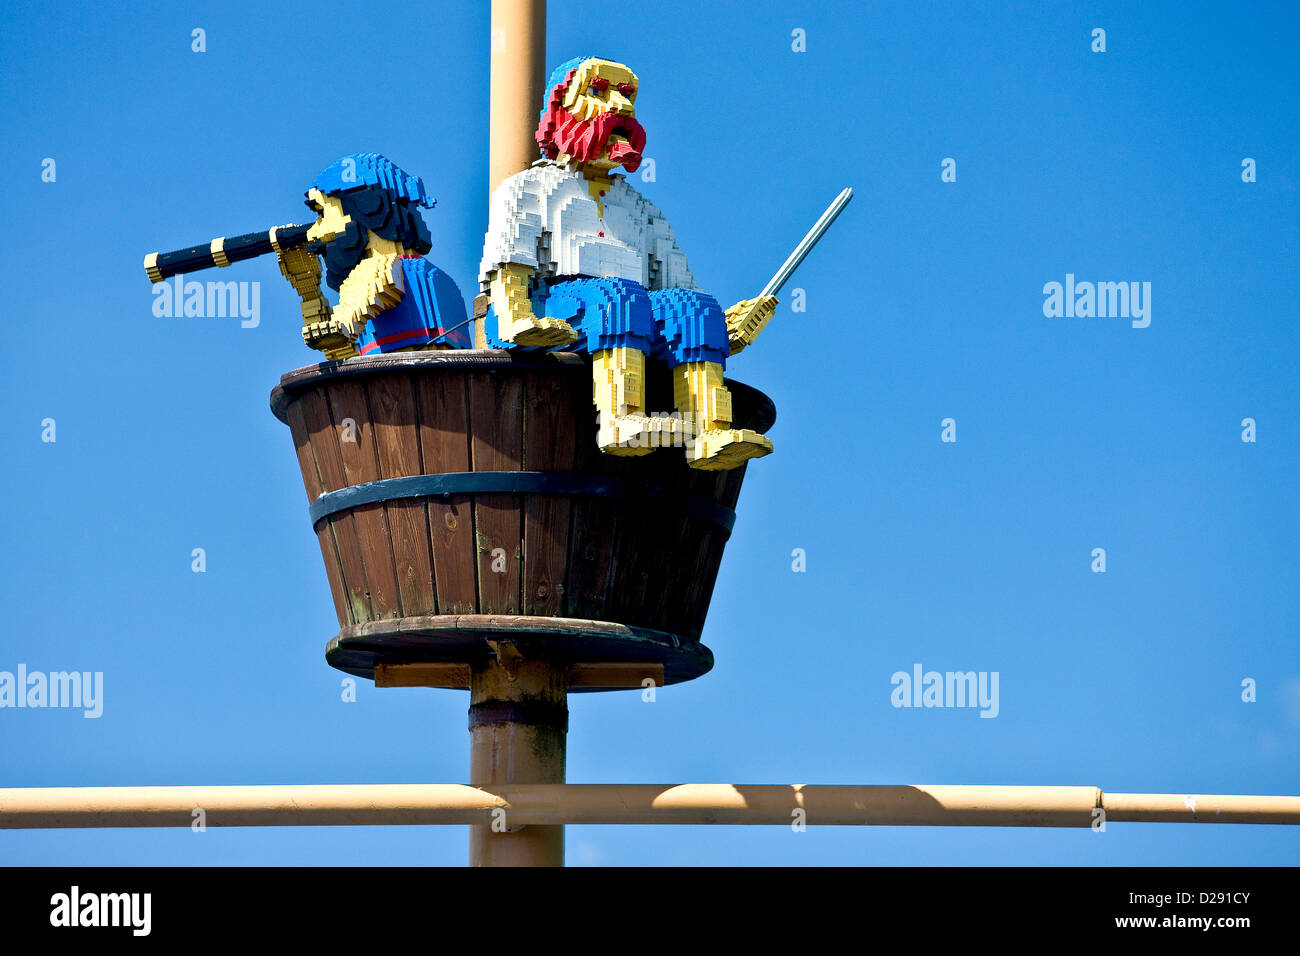 Watching pirates made from lego bri - Stock Image